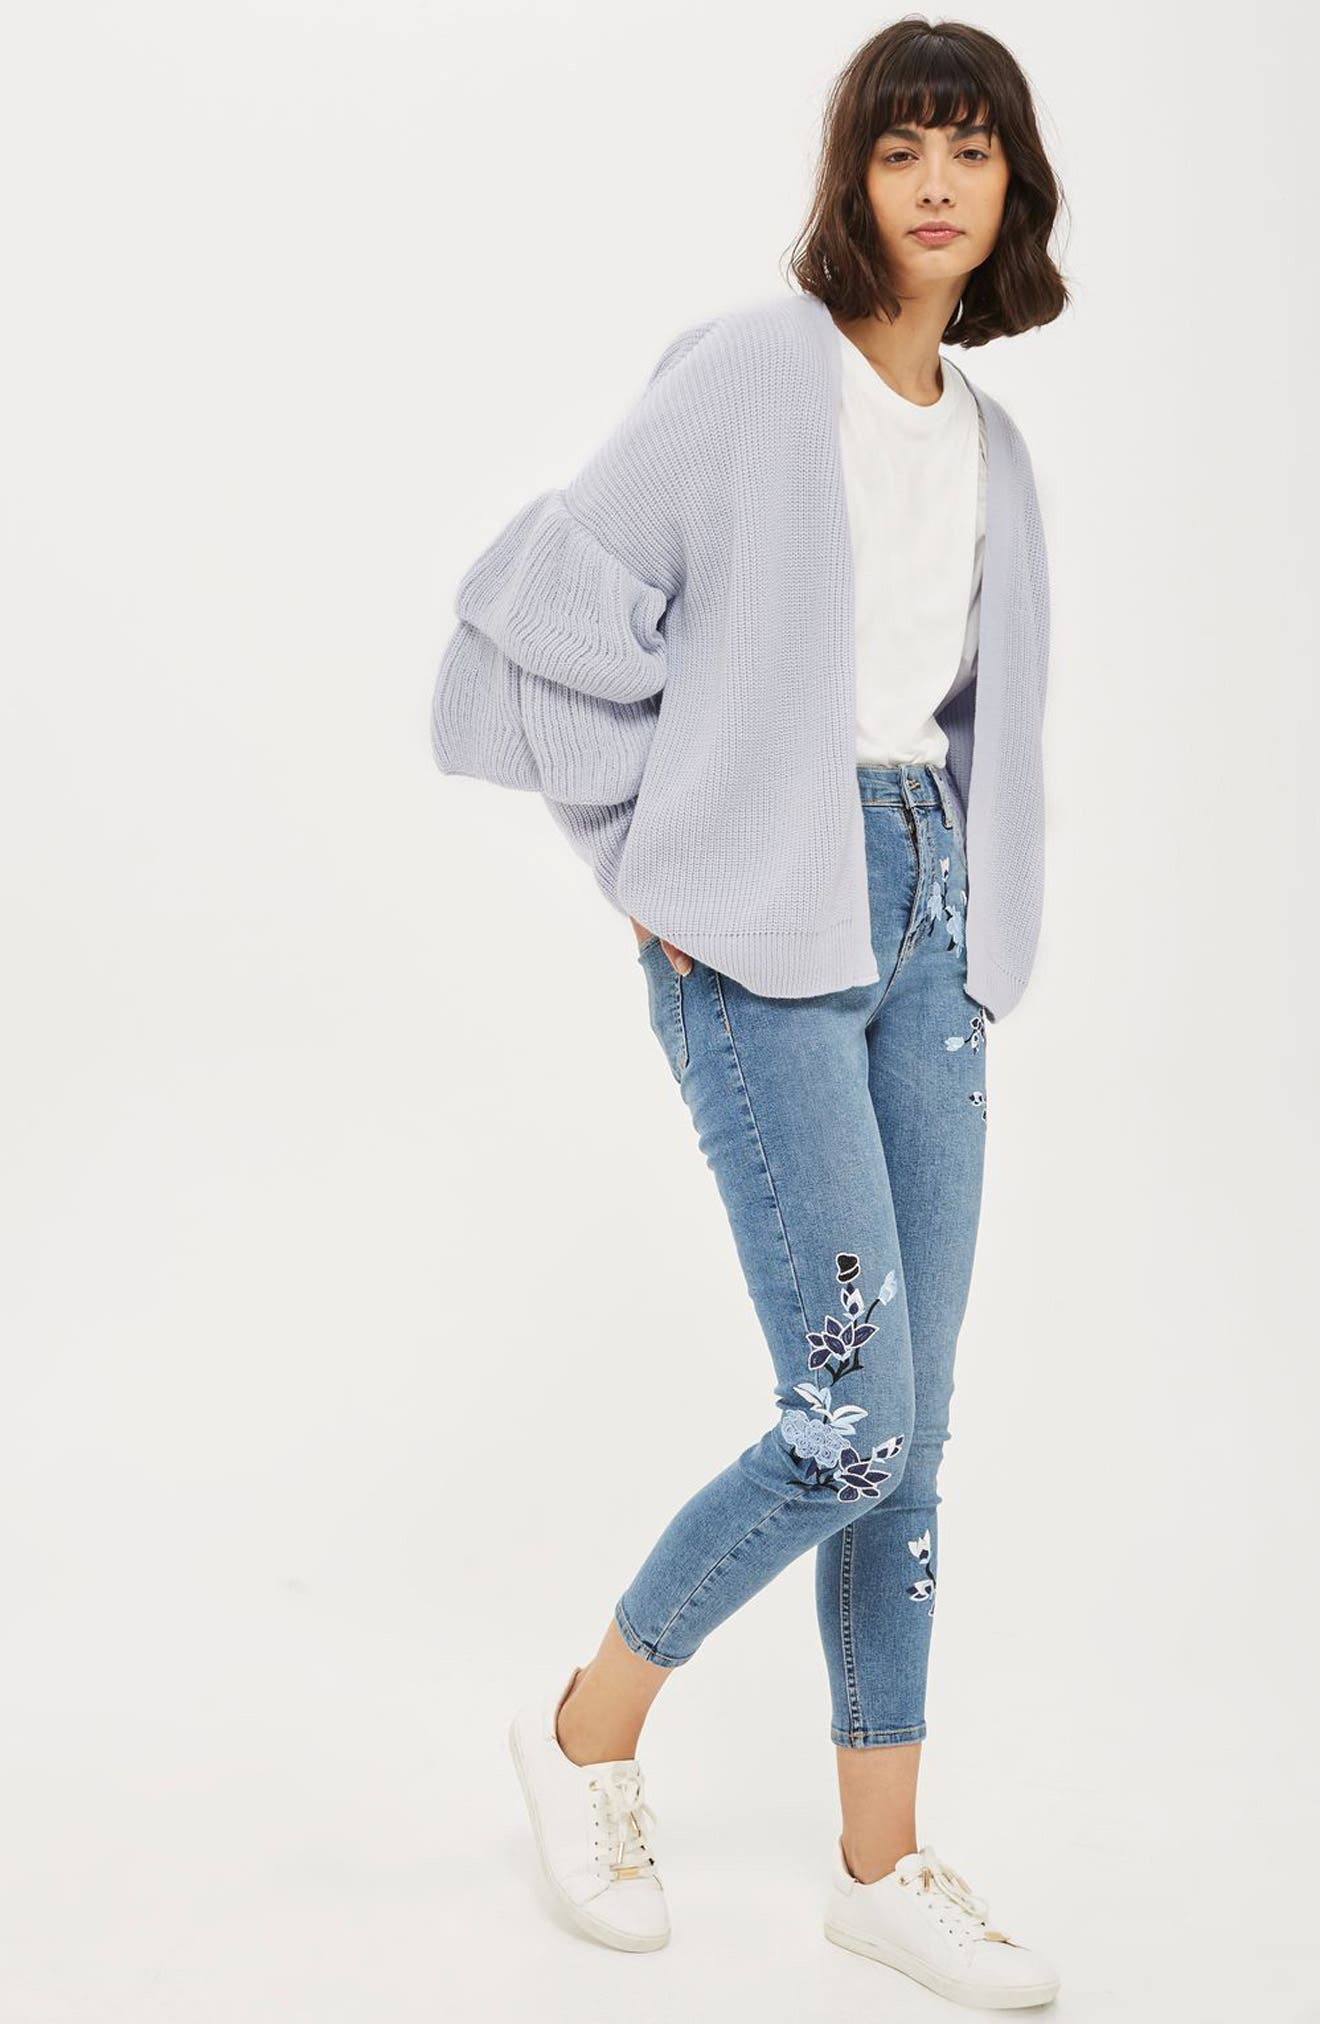 Topshop Cardigan & Jeans Outfit with Accessories